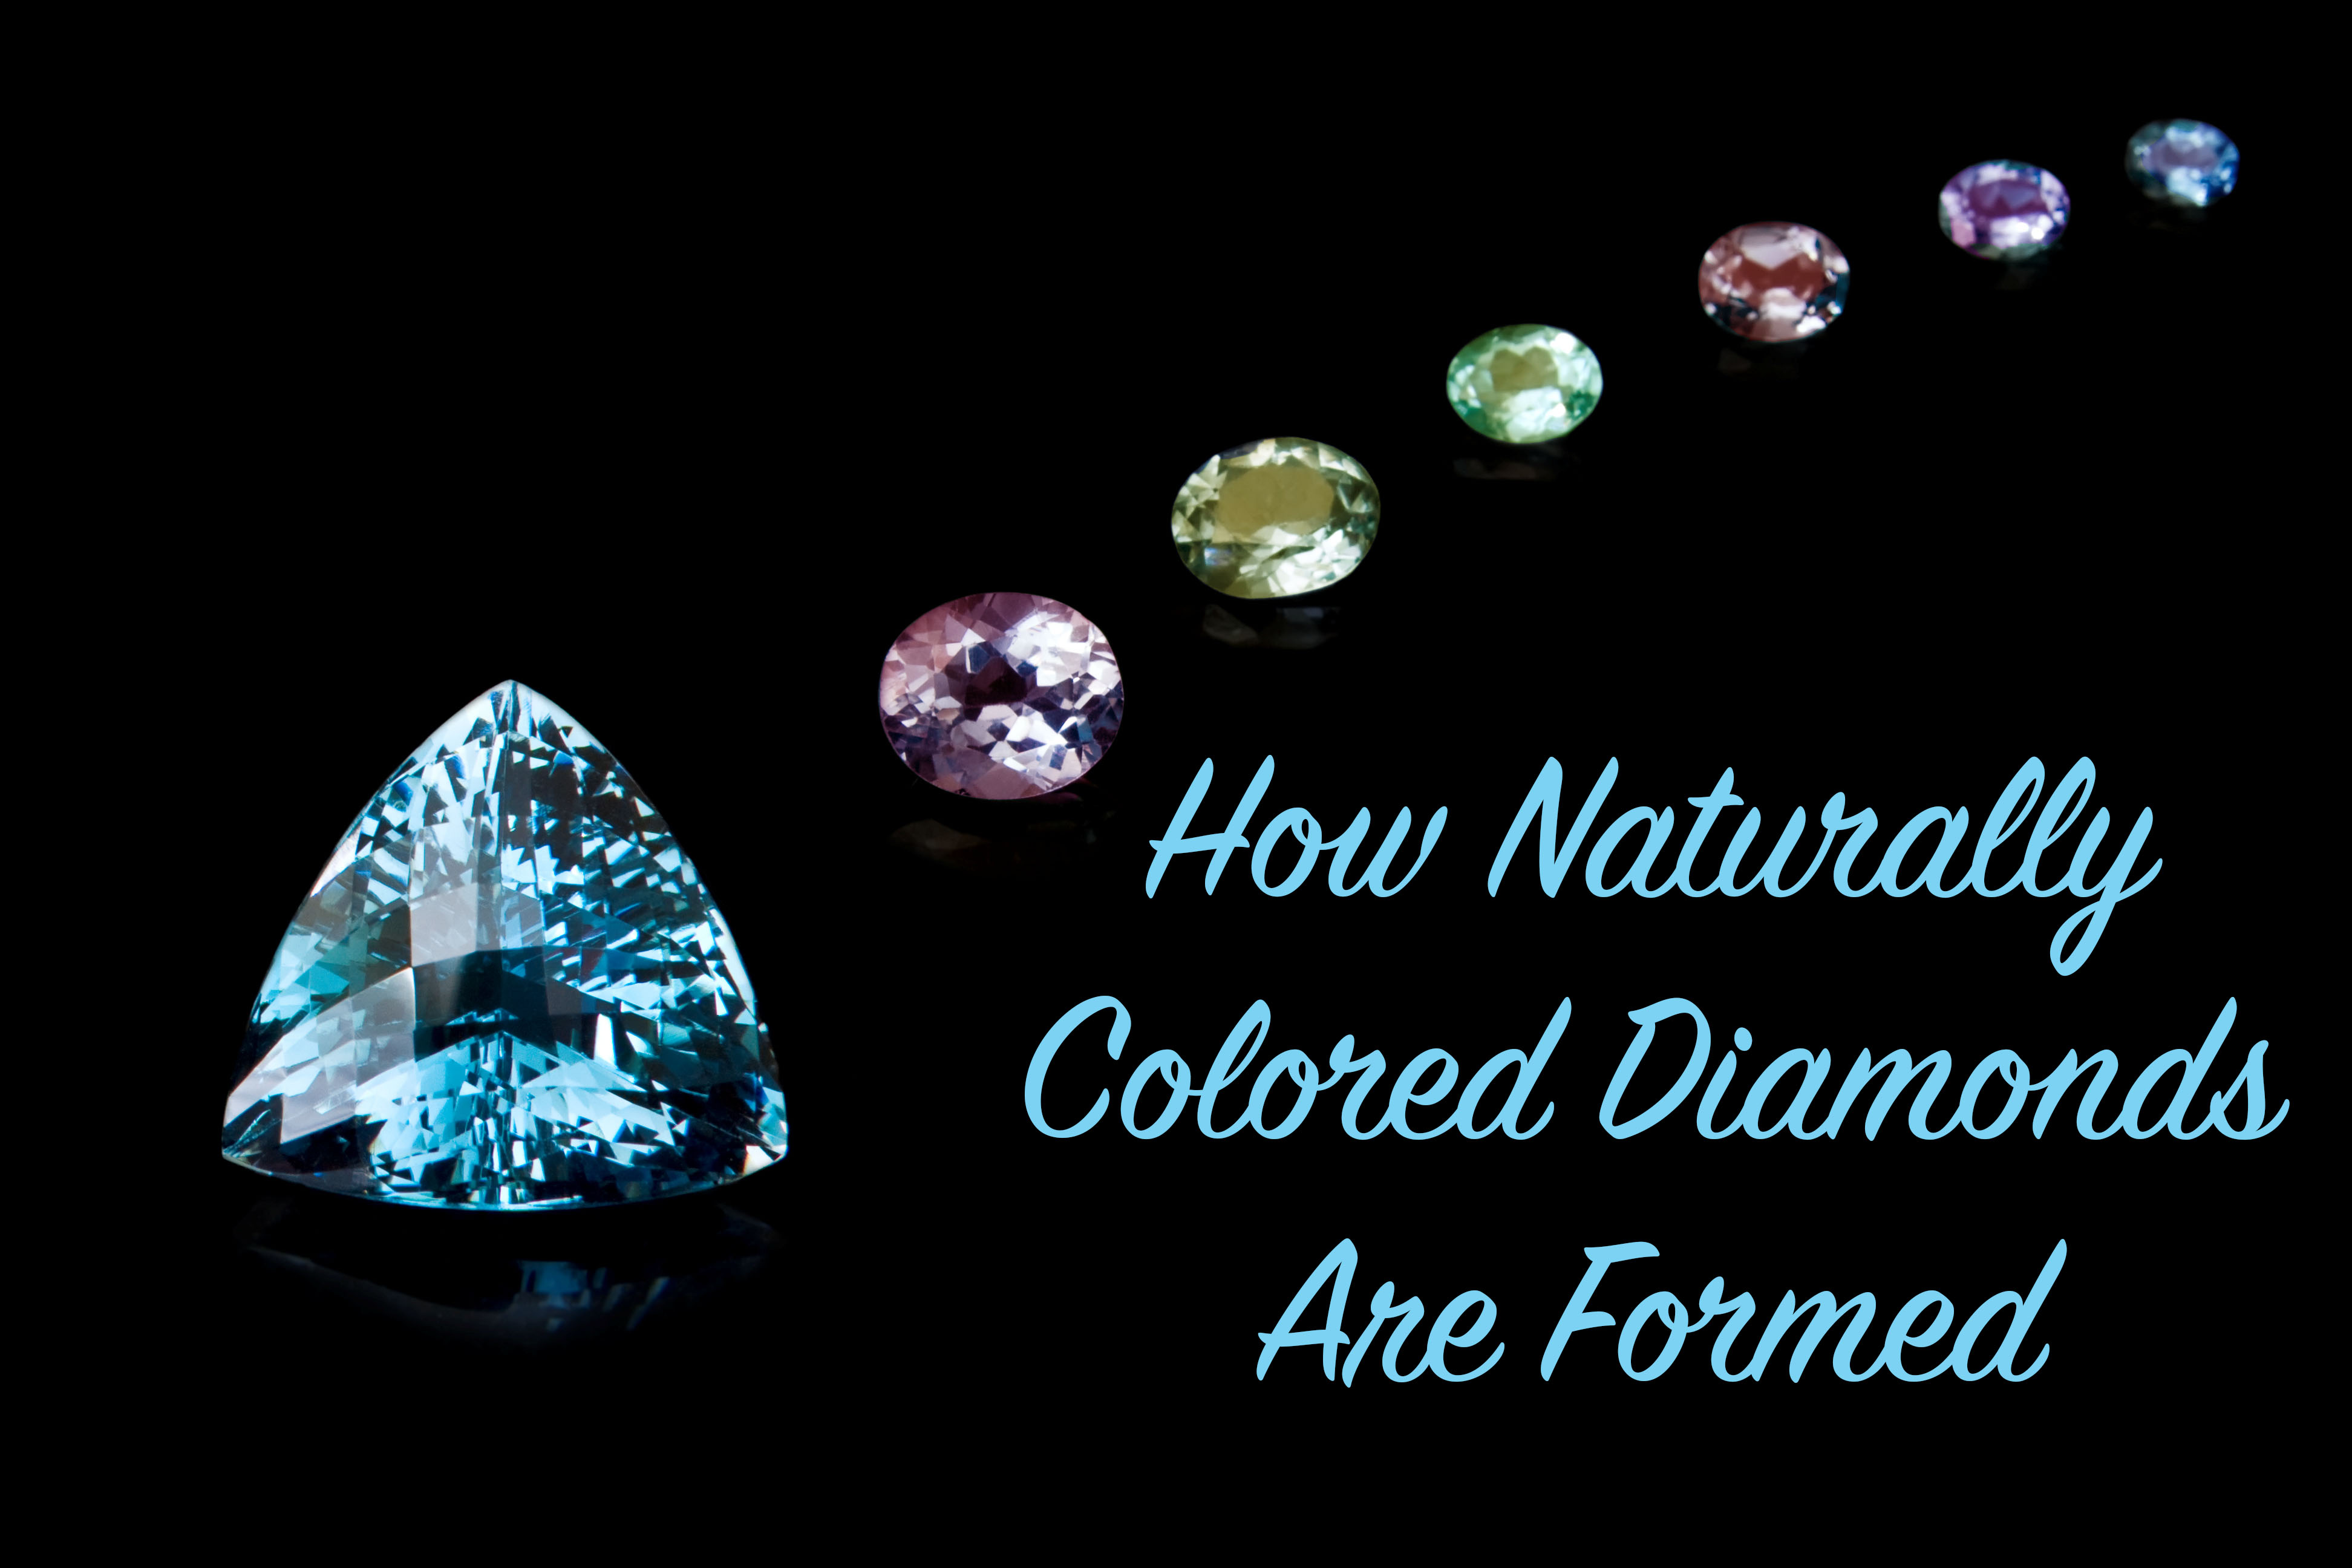 naturally-colored-diamonds-formed.jpg